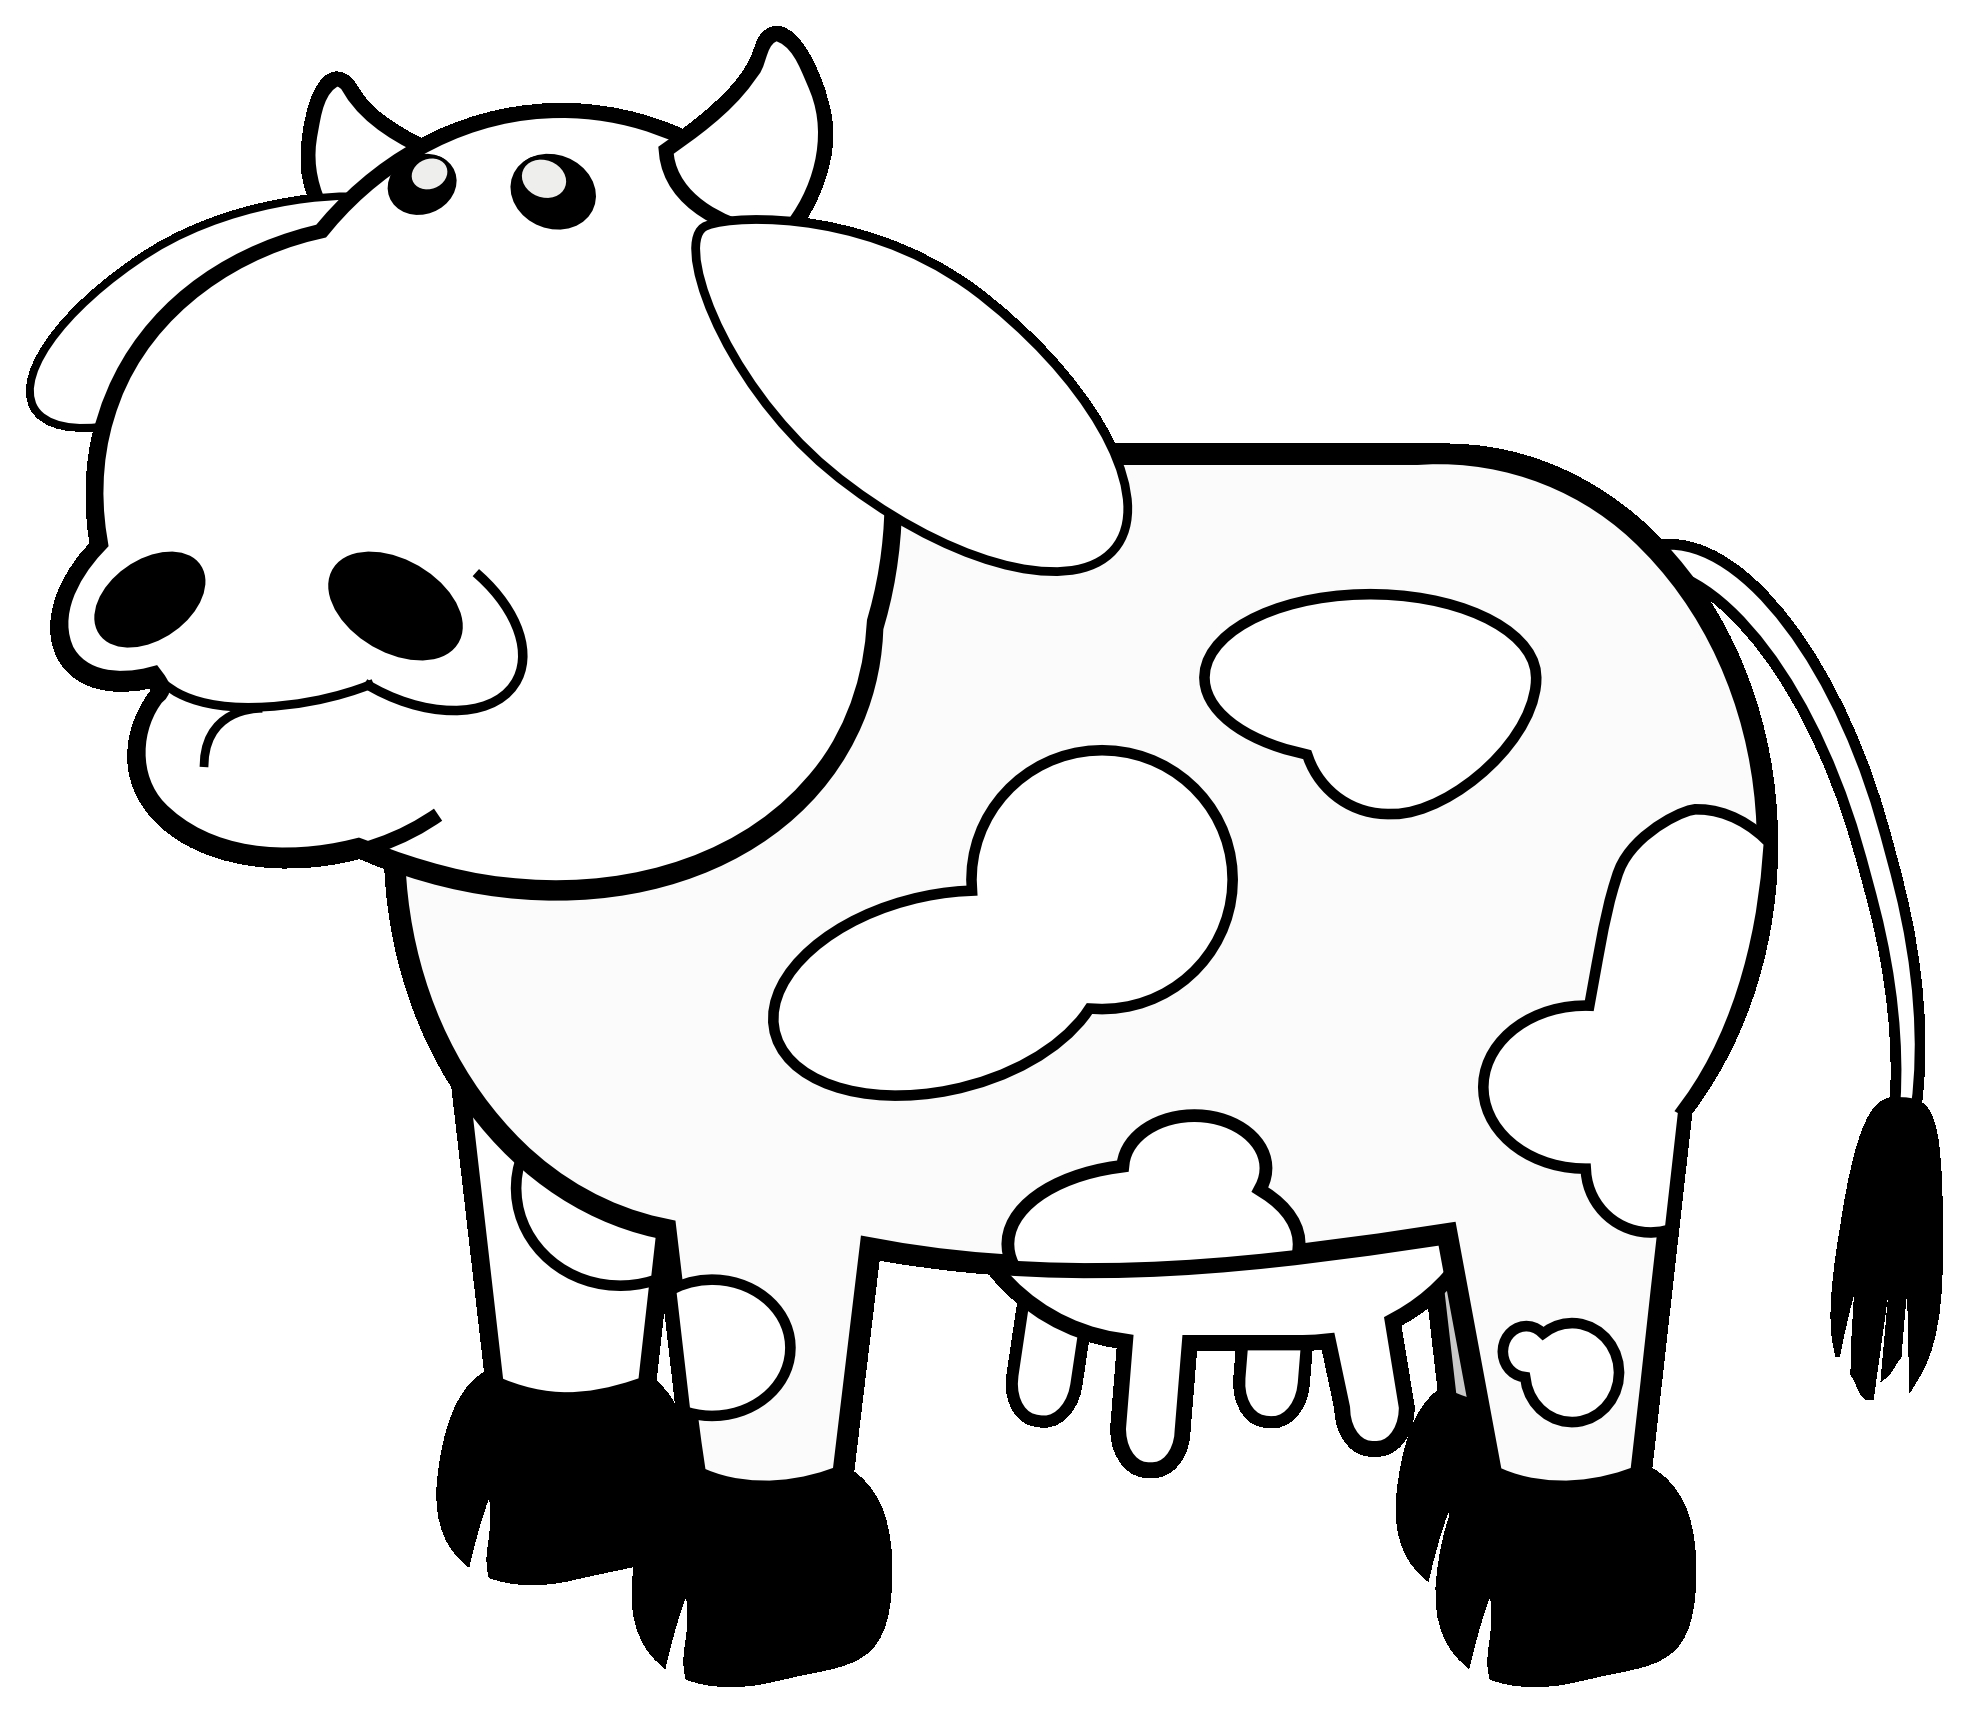 Cattle clipart black and white. Fresh cow design digital